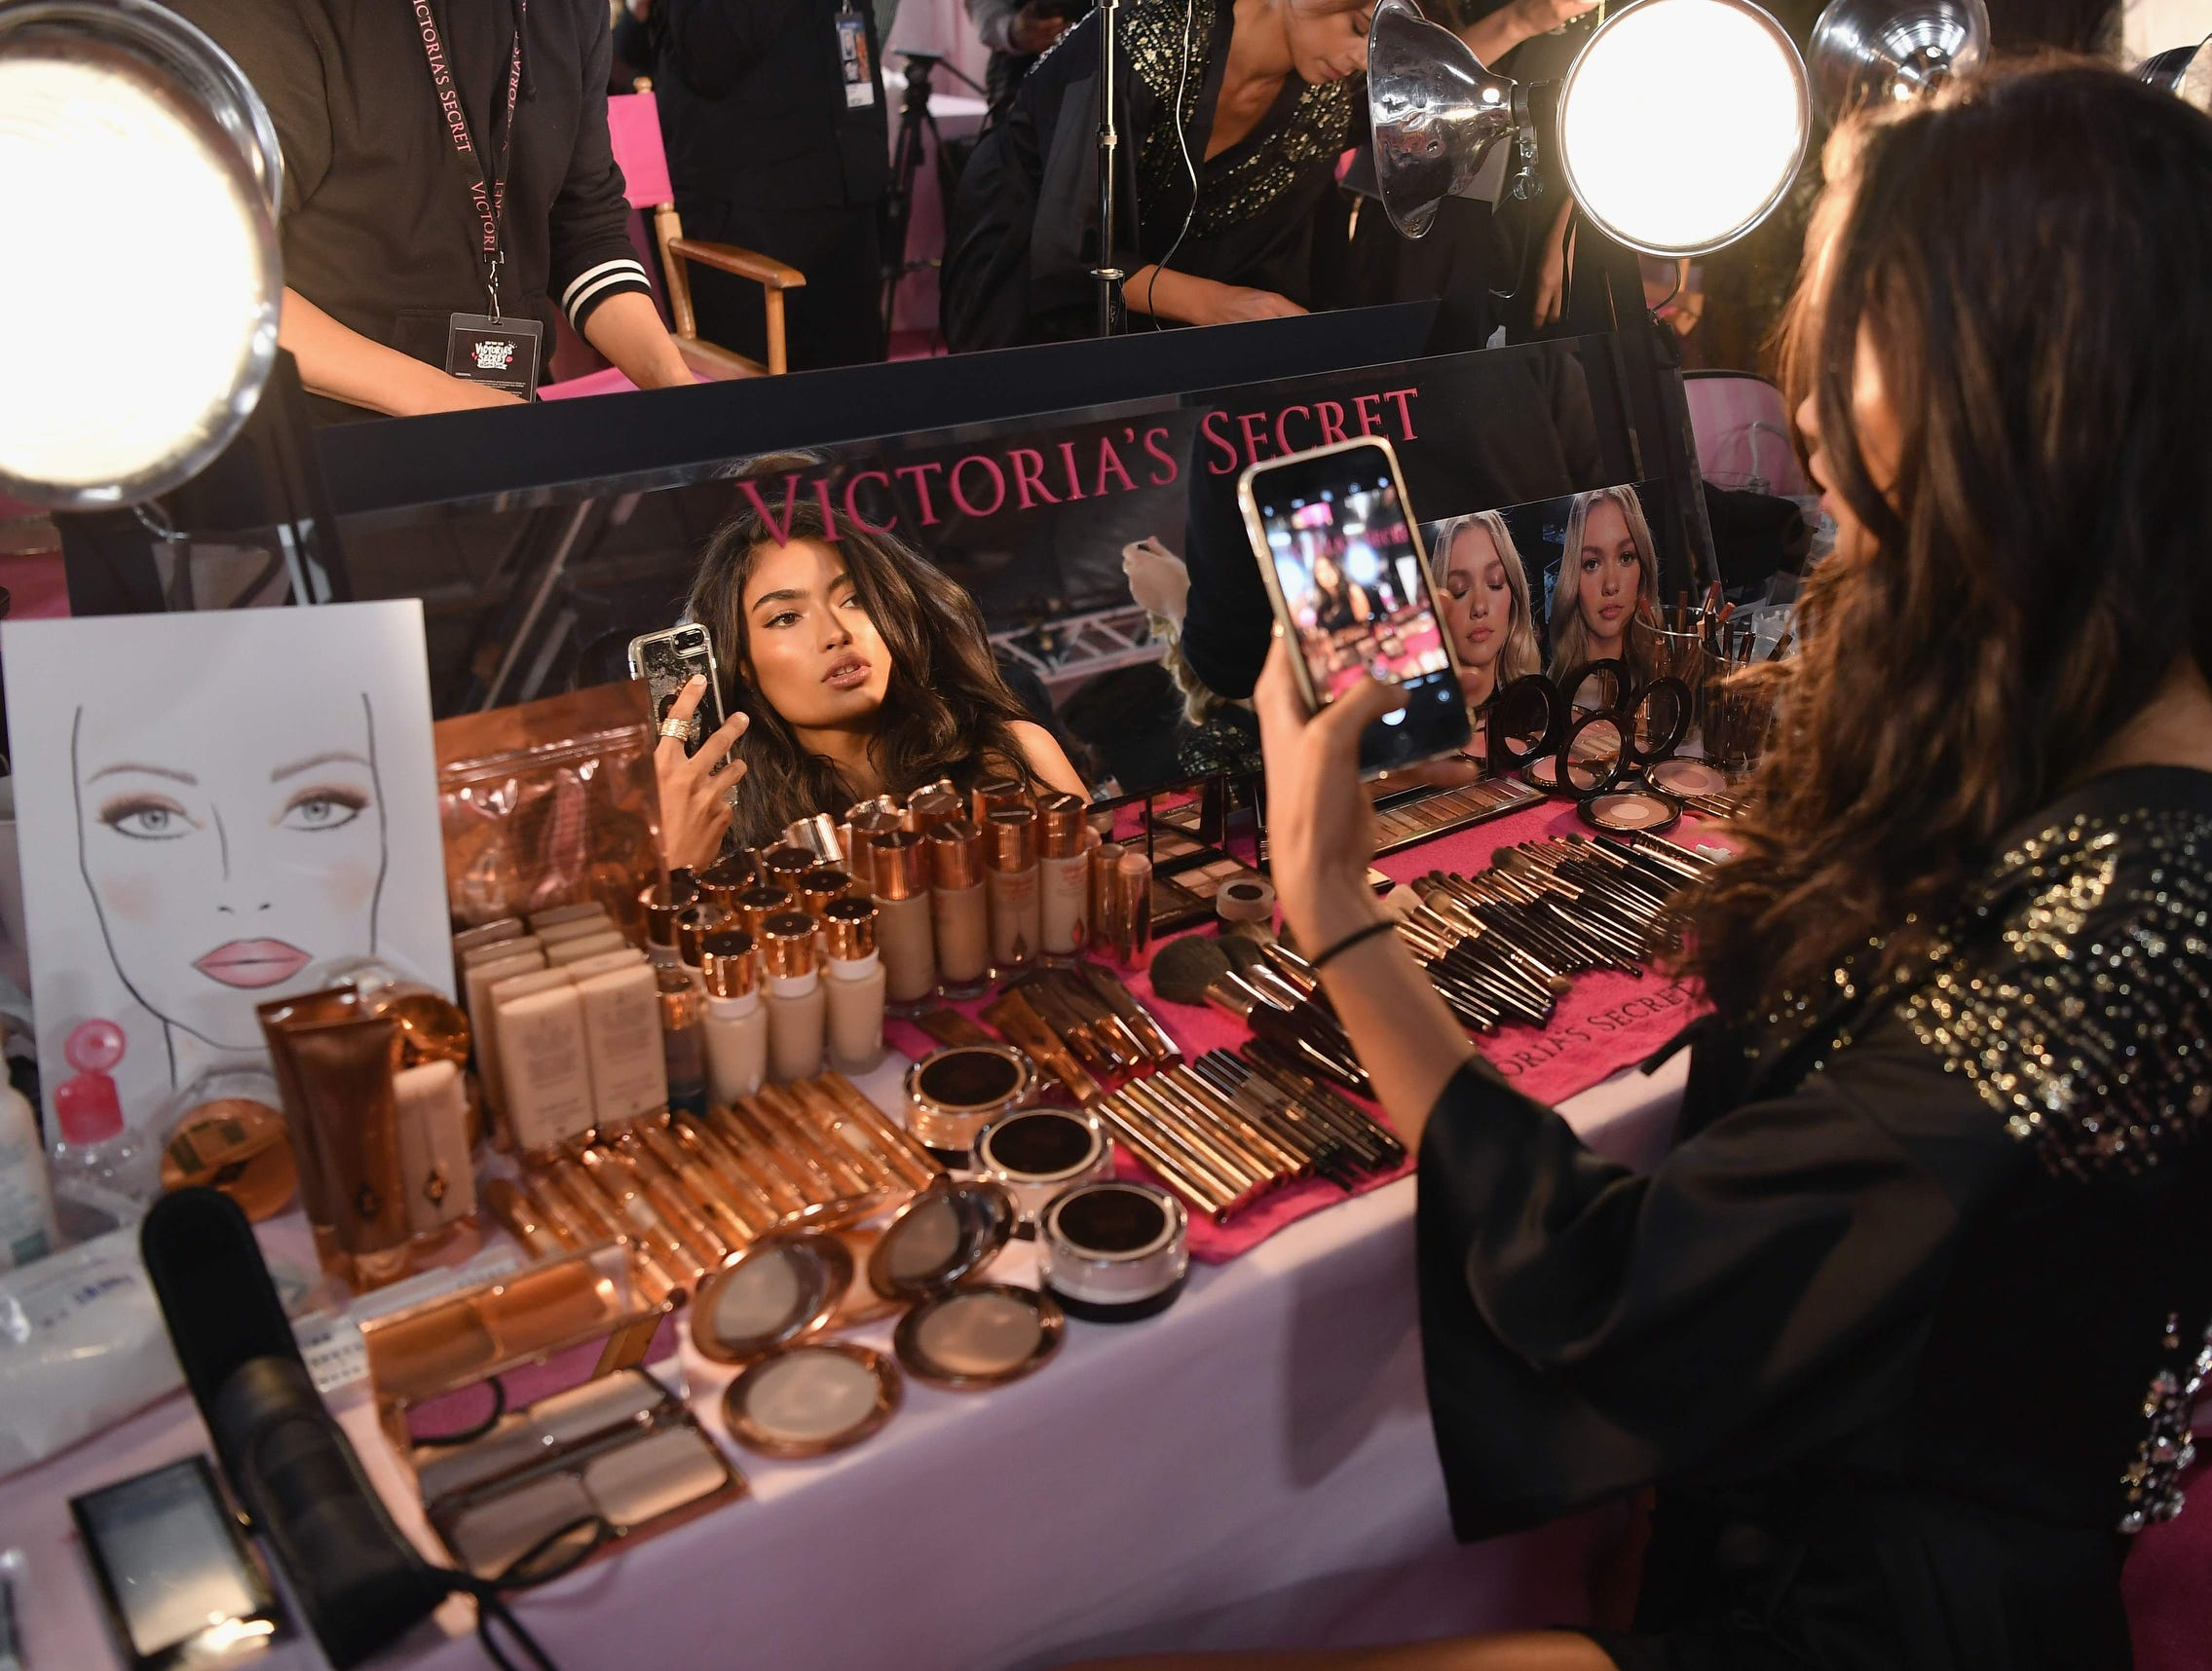 Swedish-Australian model Kelly Gale prepares.